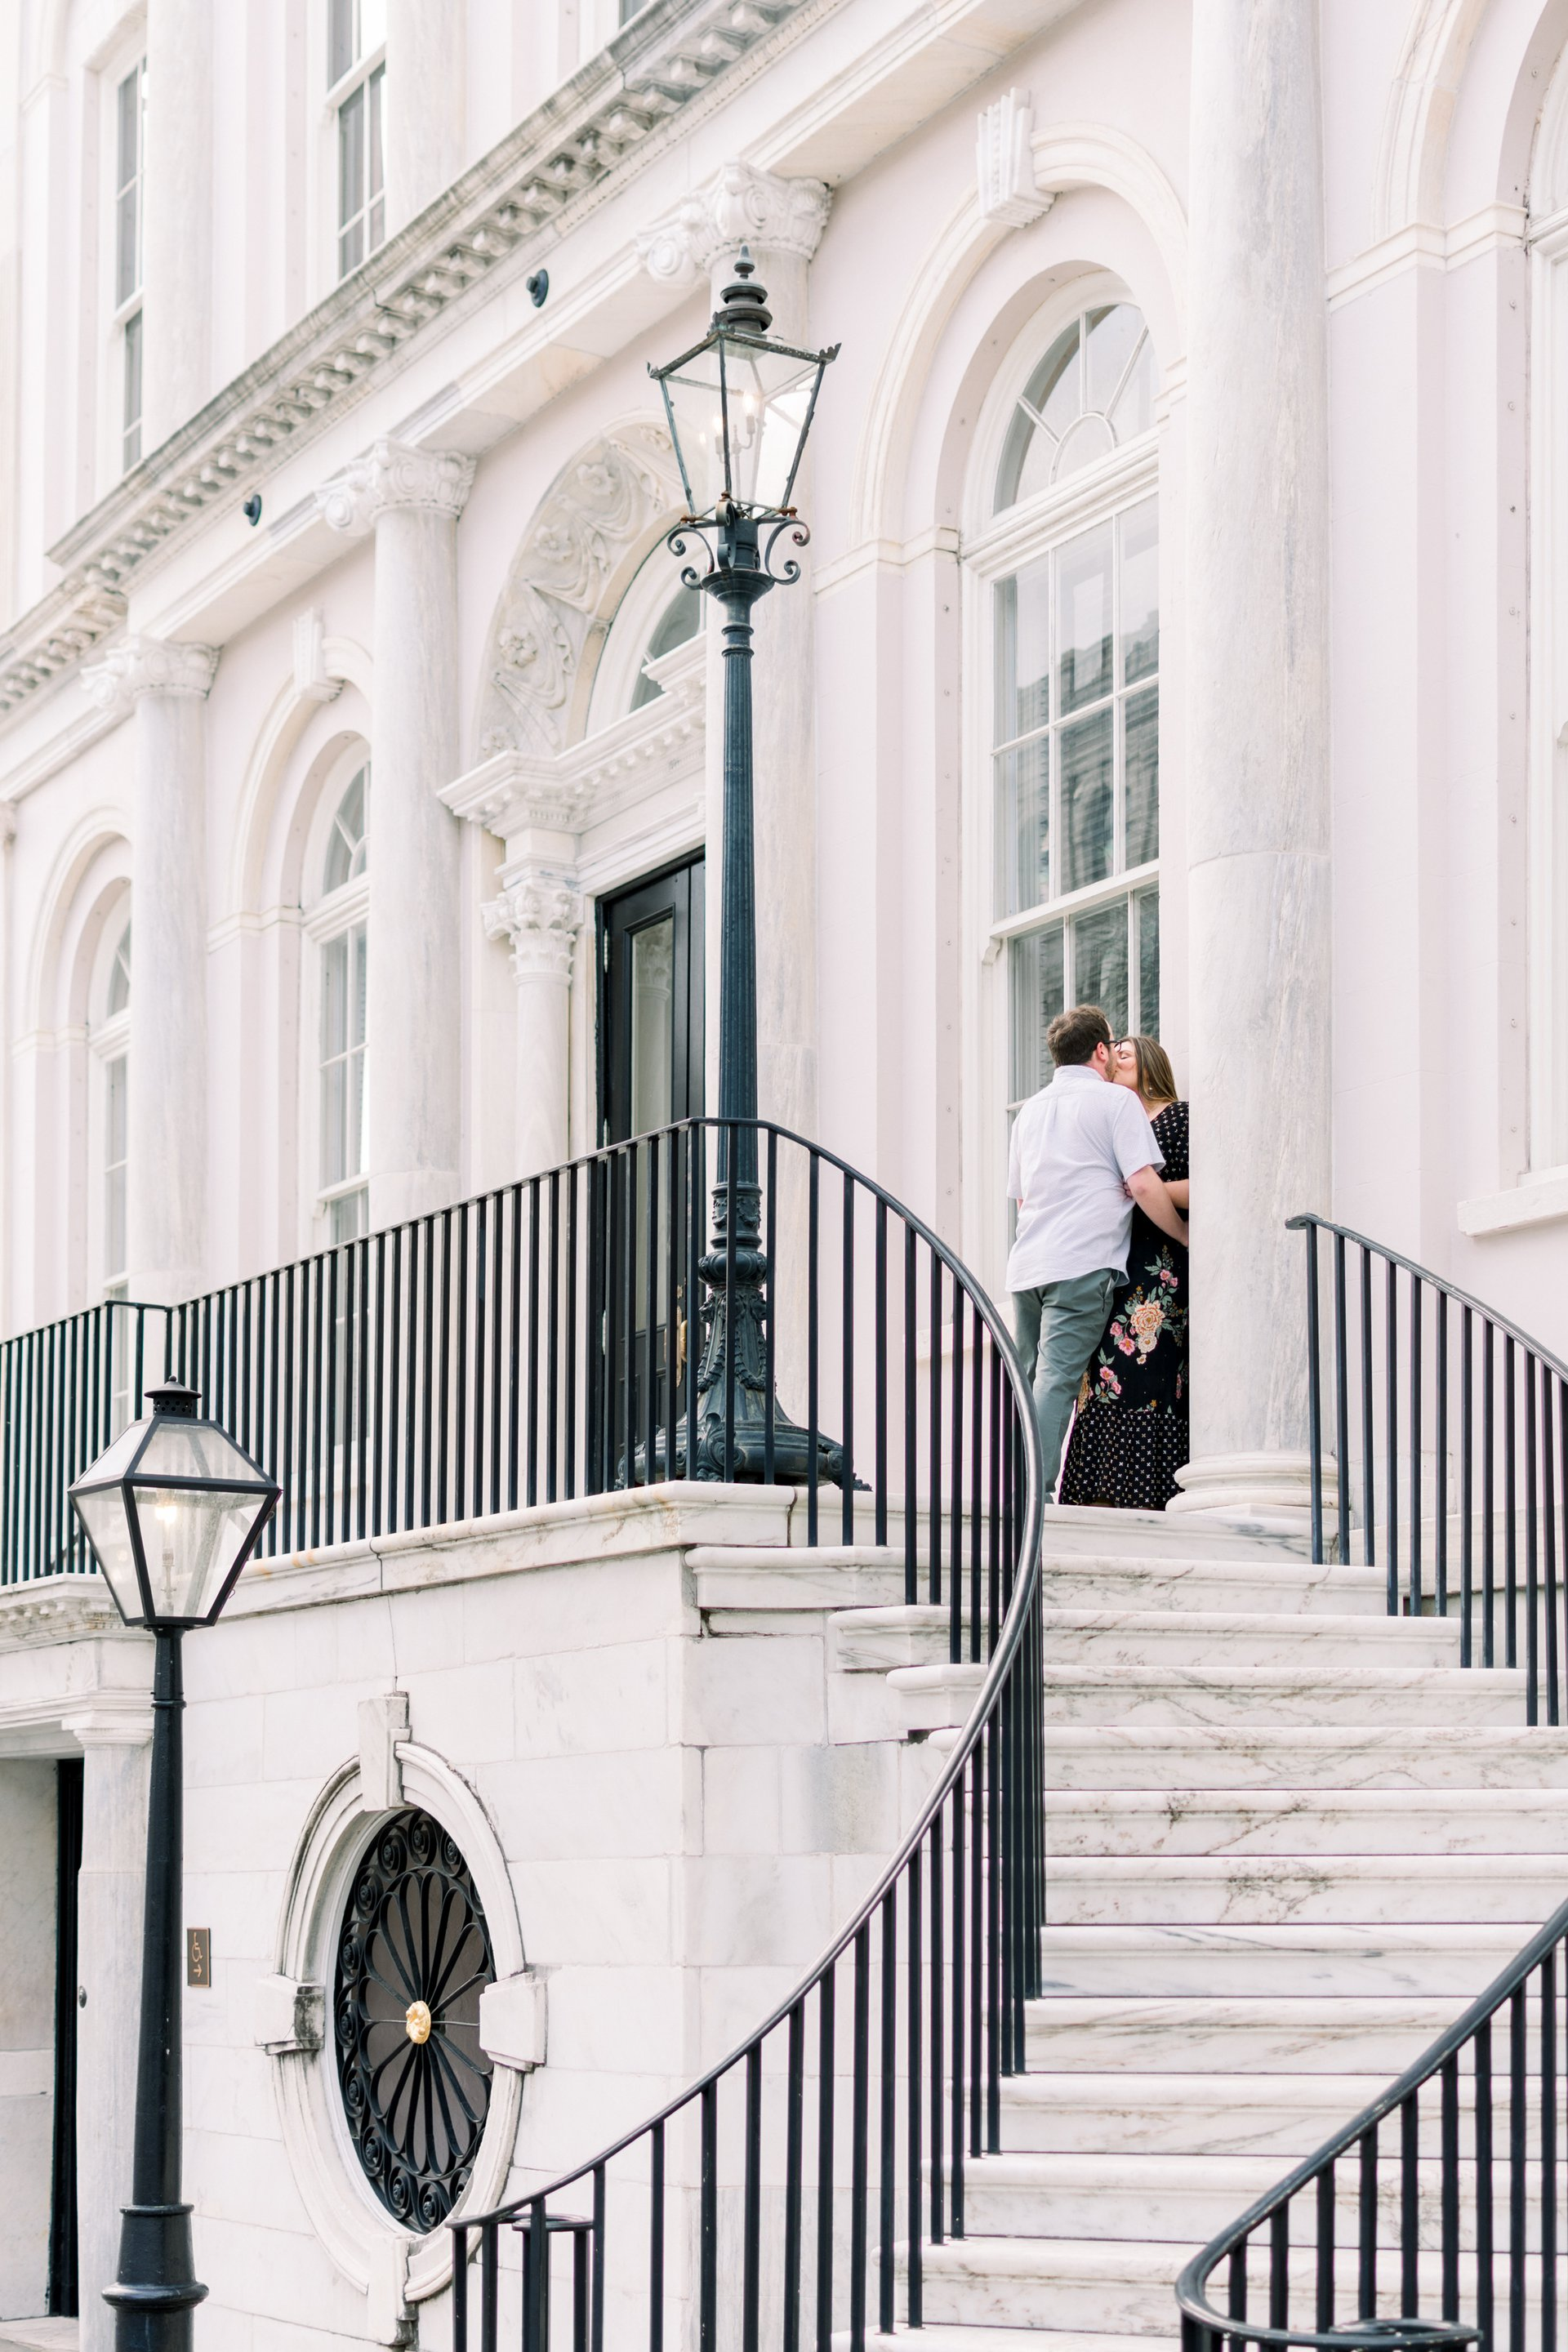 Charleston-USA-travel-story-Flytographer-3